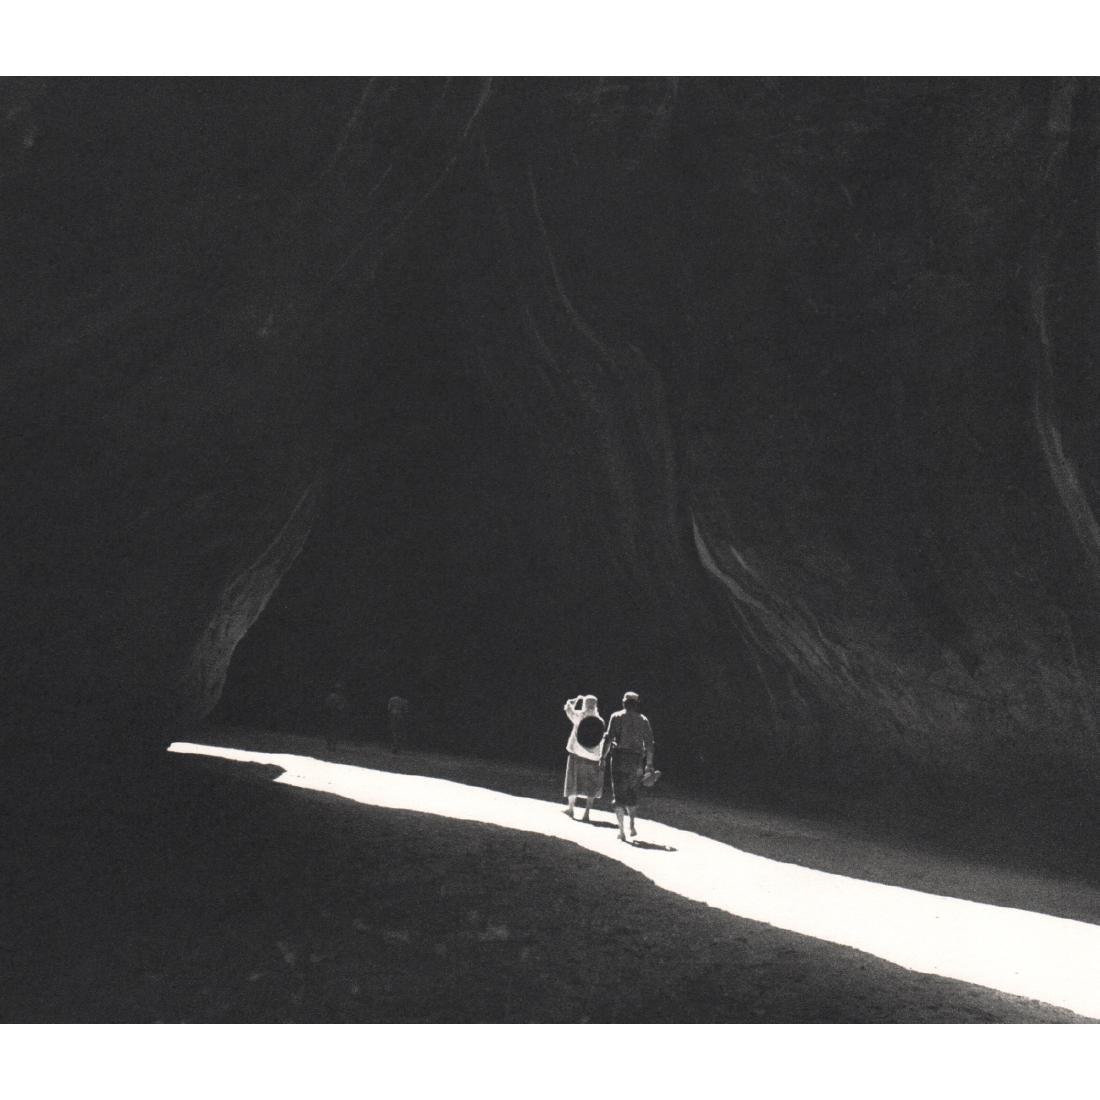 TODD WEBB - Georgia O'Keefe, Glen Canyon 1961